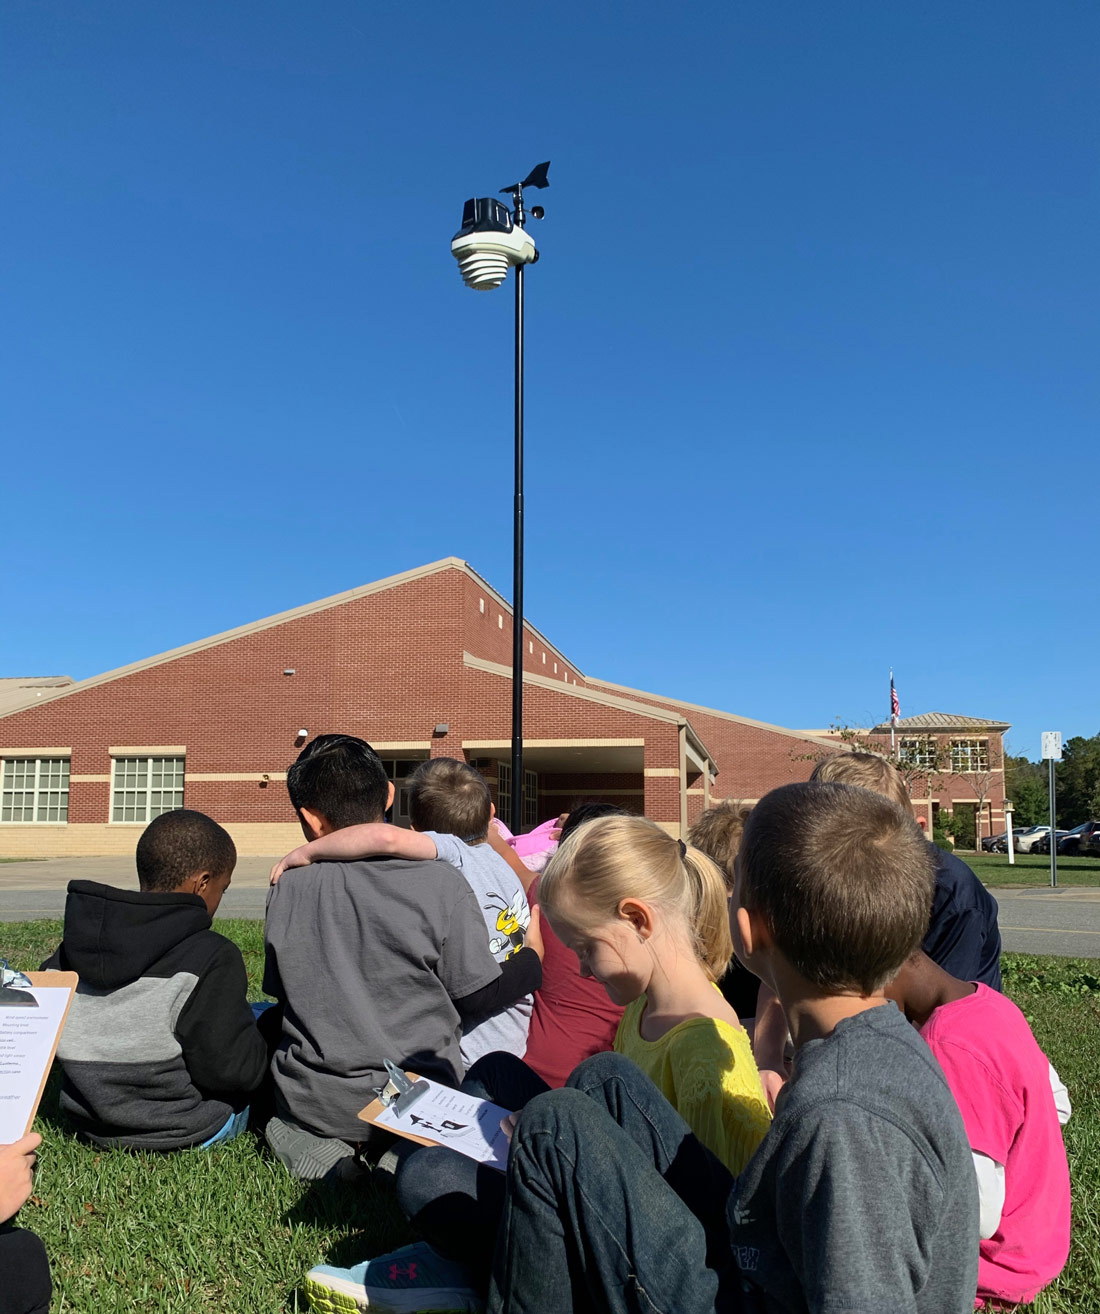 Elementary class filling out worksheets in front of AcuRite Atlas Weather Station